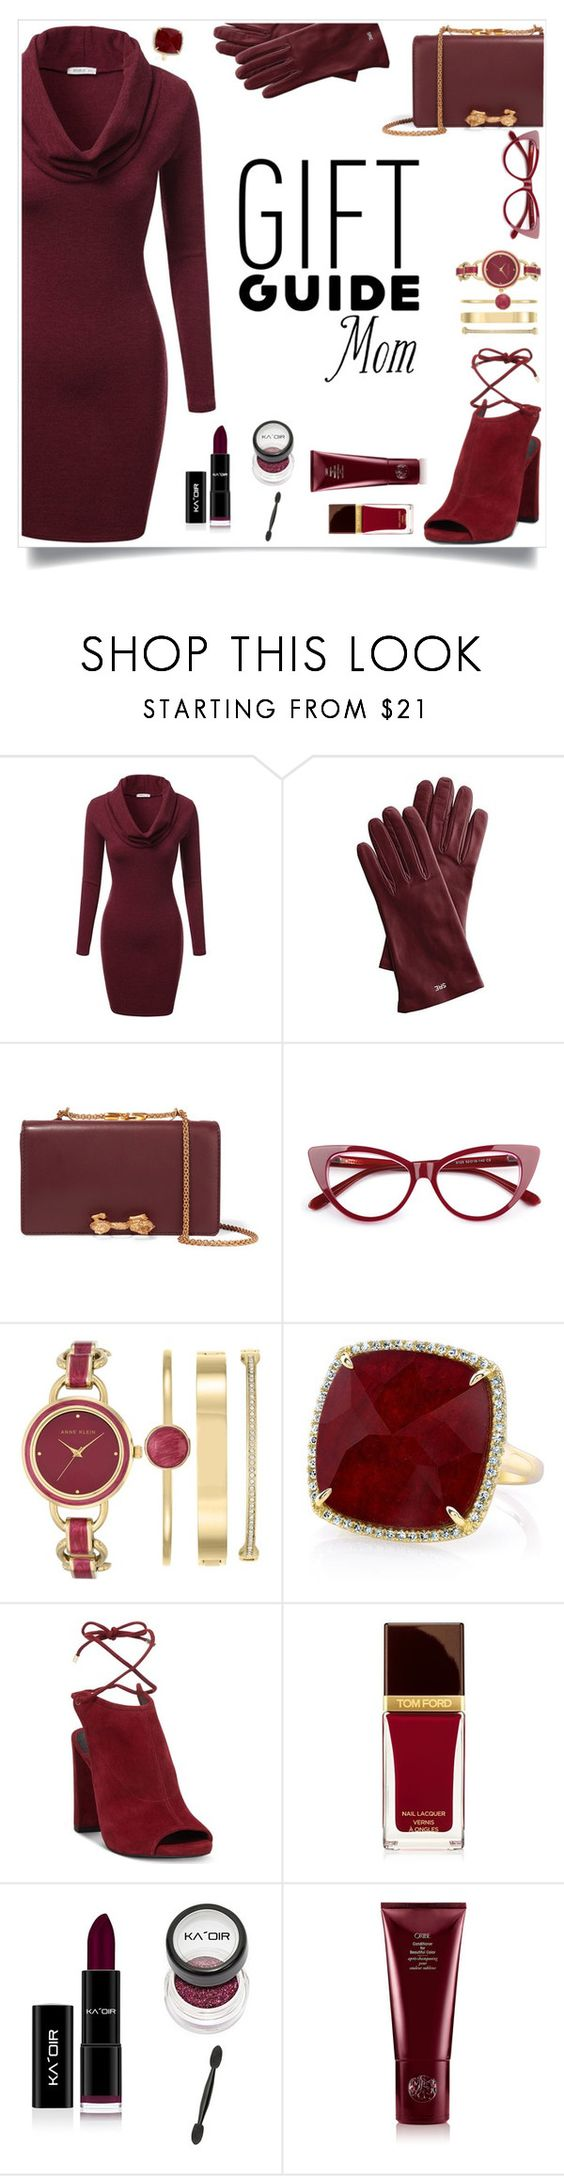 """Gift Guide Mom-"" by alliesmns ❤ liked on Polyvore featuring J.TOMSON, Mark & Graham, Valentino, Anne Klein, Anne Sisteron, Kenneth Cole, Tom Ford and Oribe"